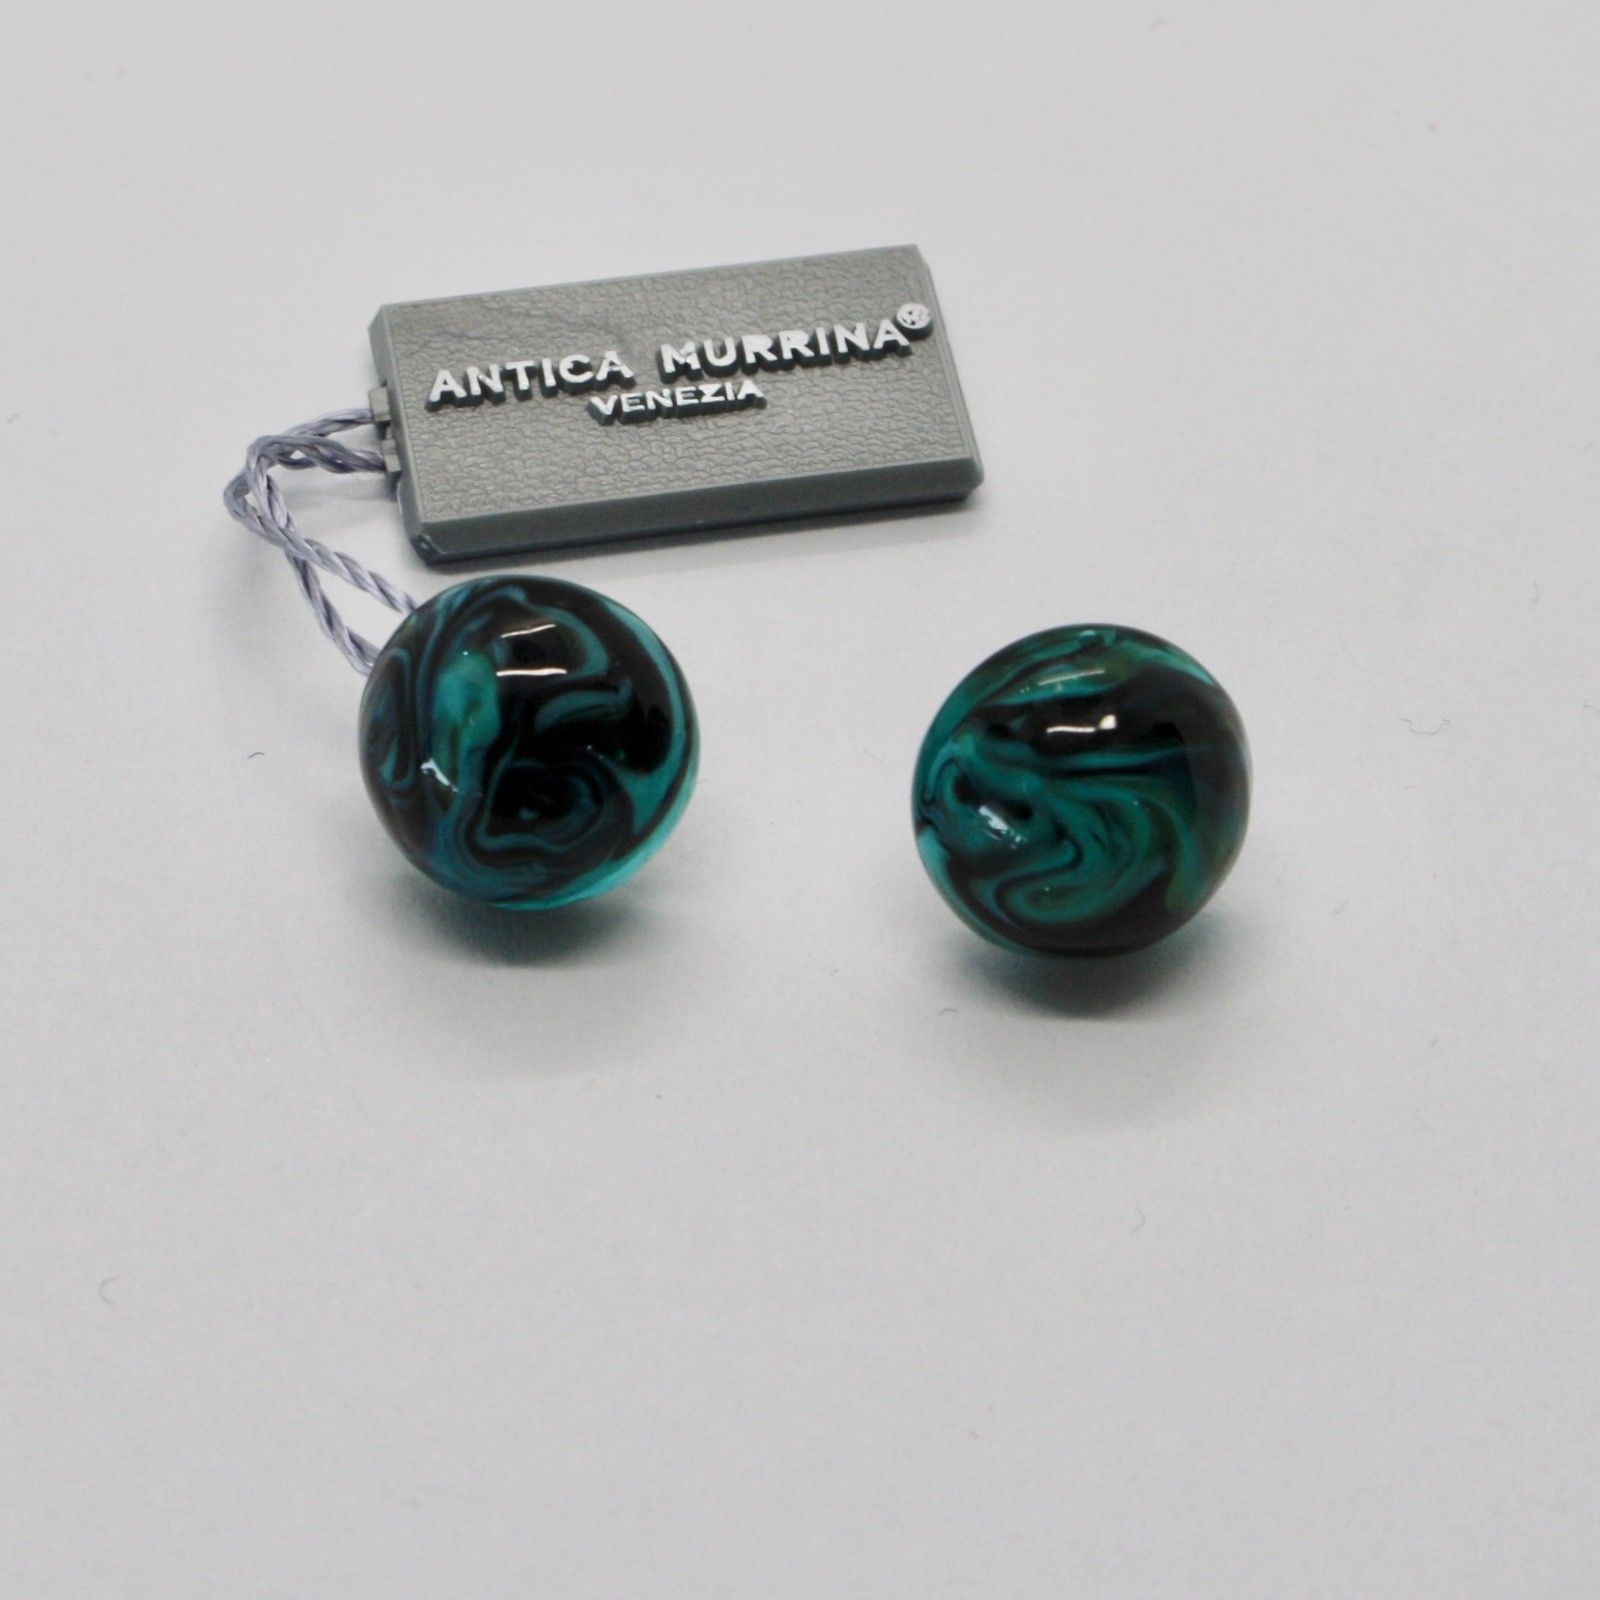 ANTICA MURRINA VENEZIA EARRINGS WITH MULTICOLOR MURANO GLASS AND STEEL OR593A59